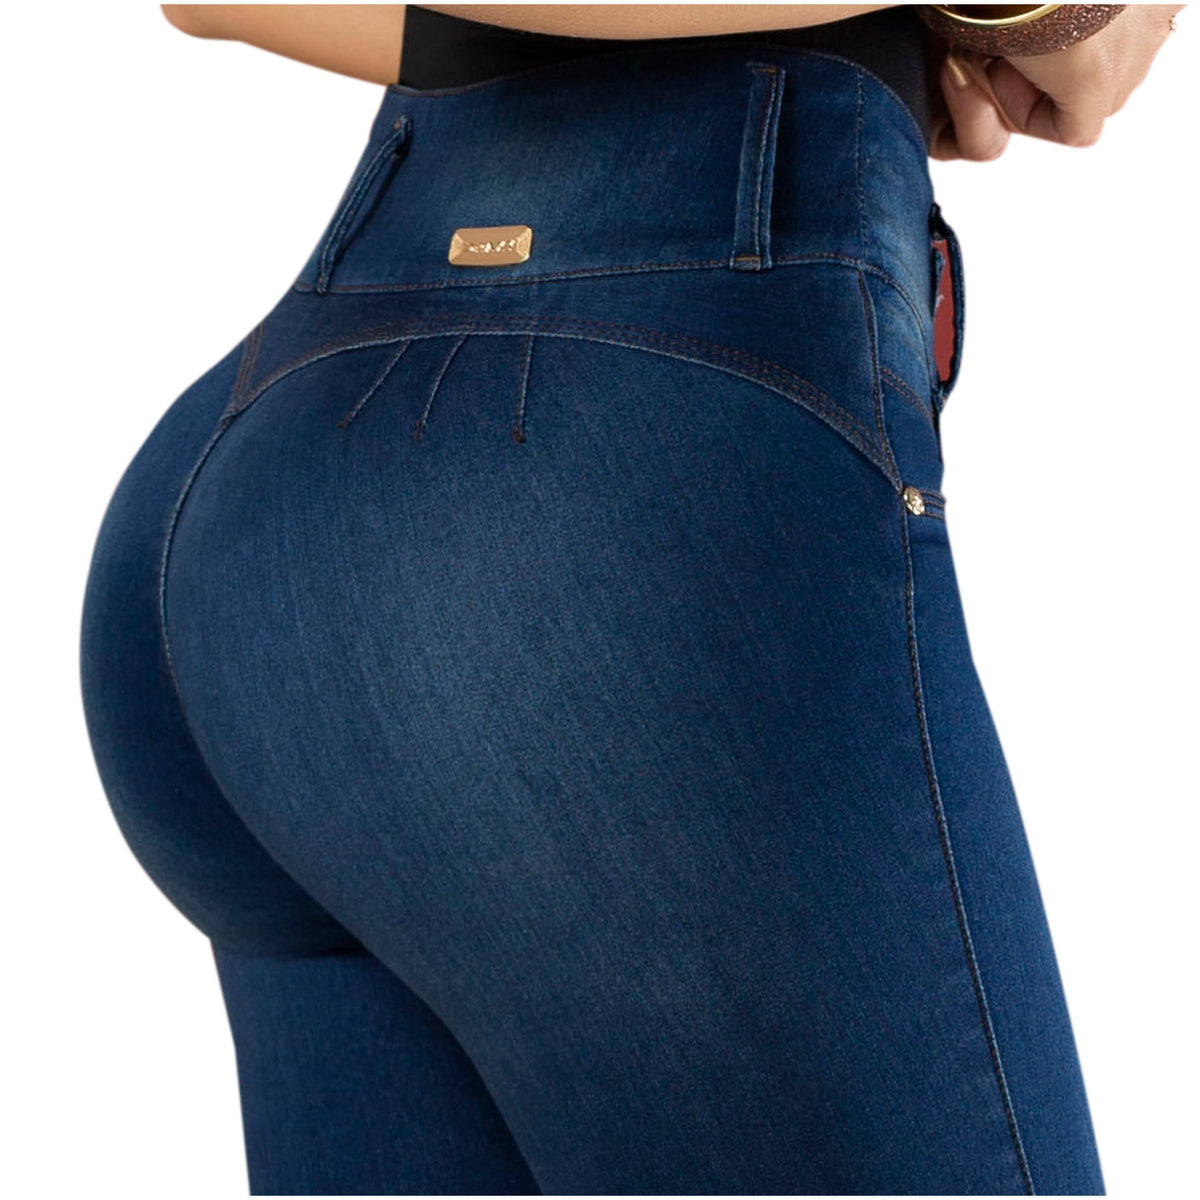 Draxy Women Colombian Fashion Ankle Wrap Butt lifting Wonder Shaping Jeans